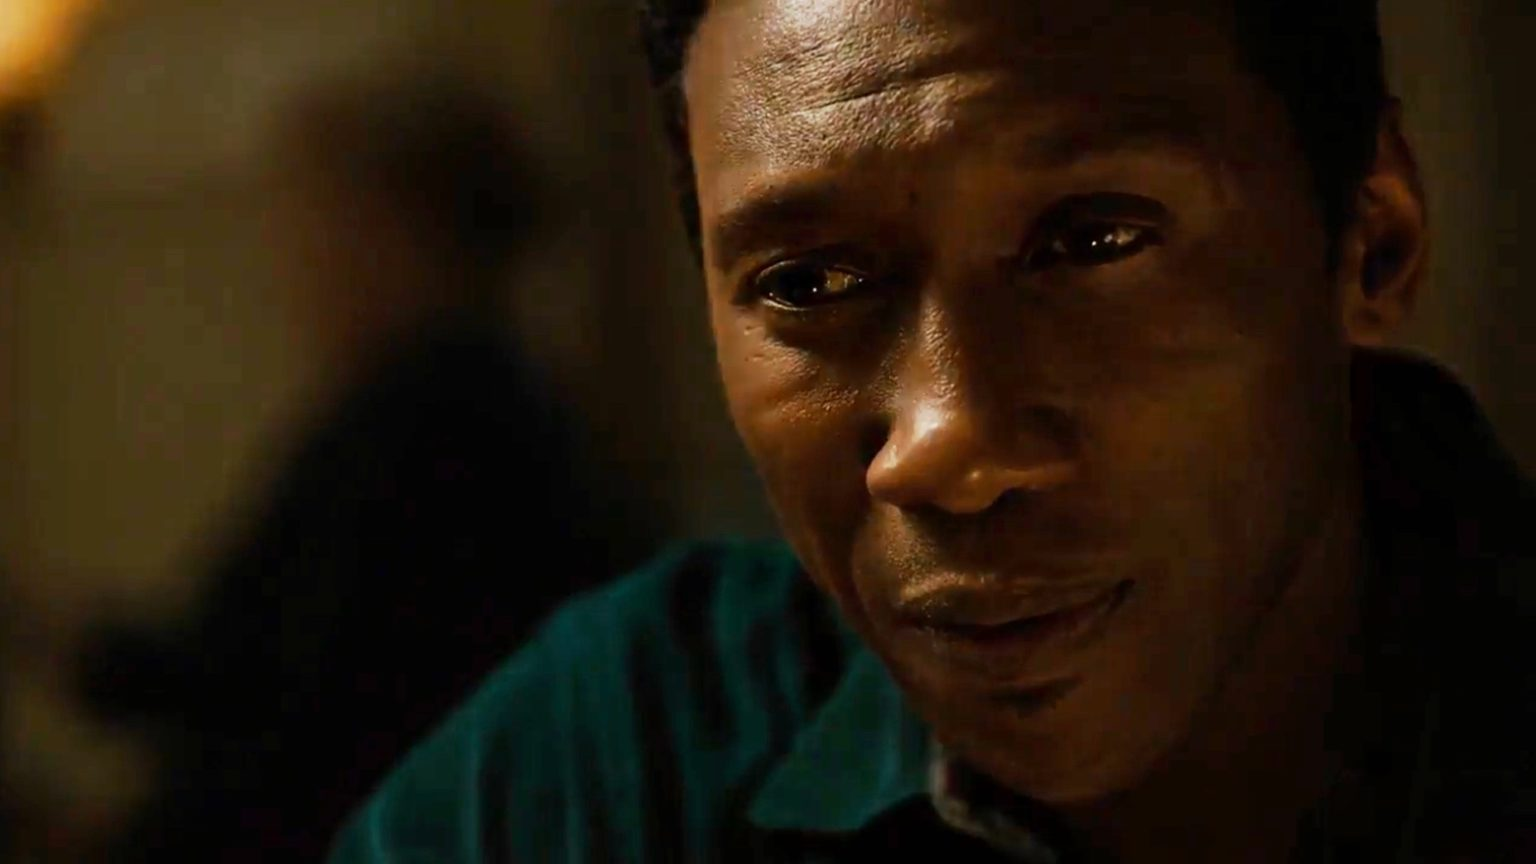 Mahershala Ali is starring in a film for Apple TV+.